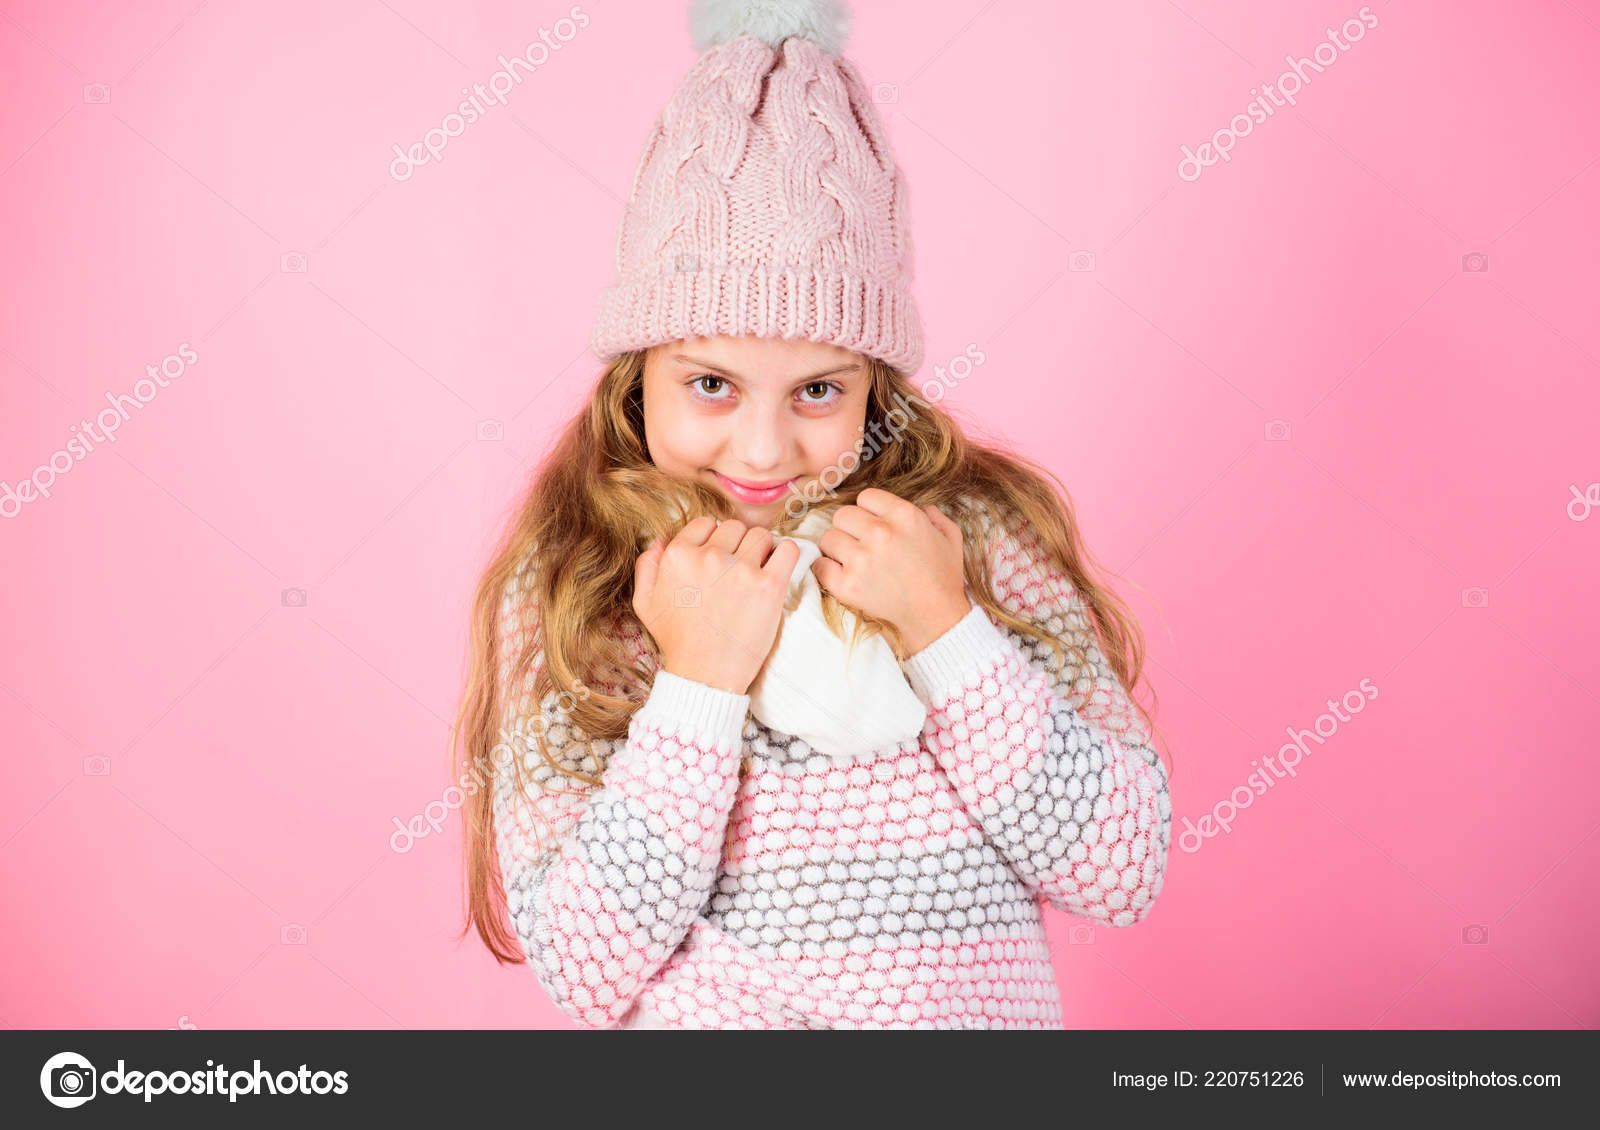 df6ba9b90 Girl long hair dreamy mood pink background. Kid smiling wear knitted ...